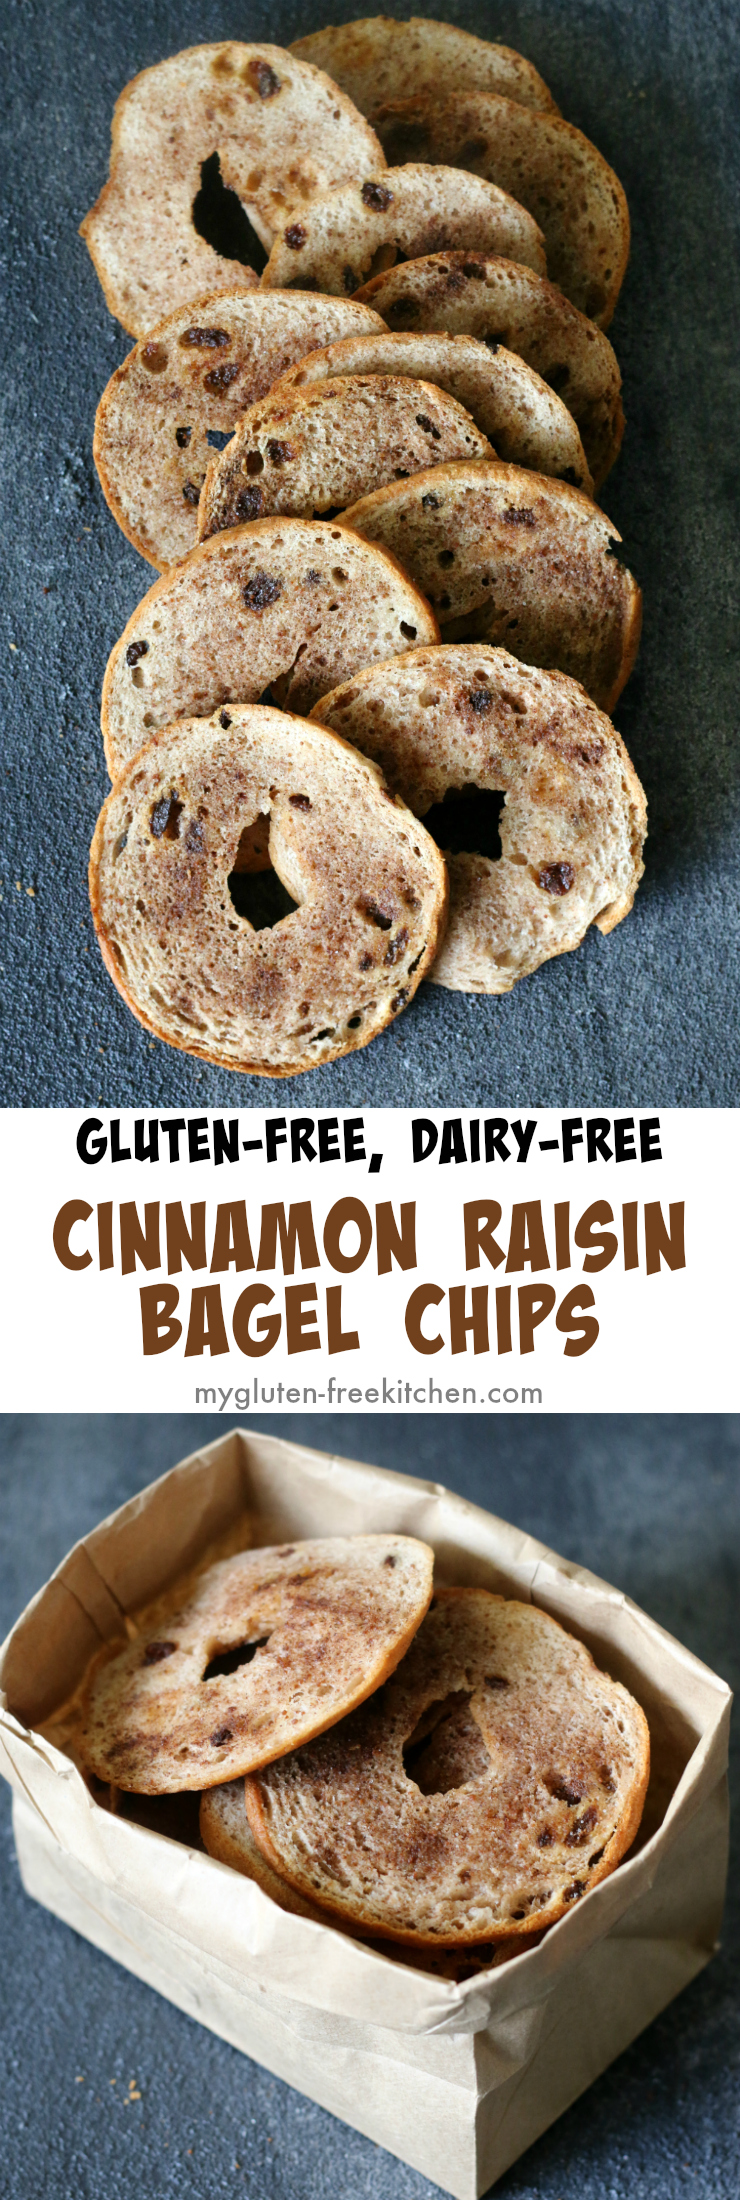 Gluten-free Dairy-free Cinnamon Raisin Bagel Chips - Crunchy snack that's allergy friendly. Great for school lunches or backpack snacks!